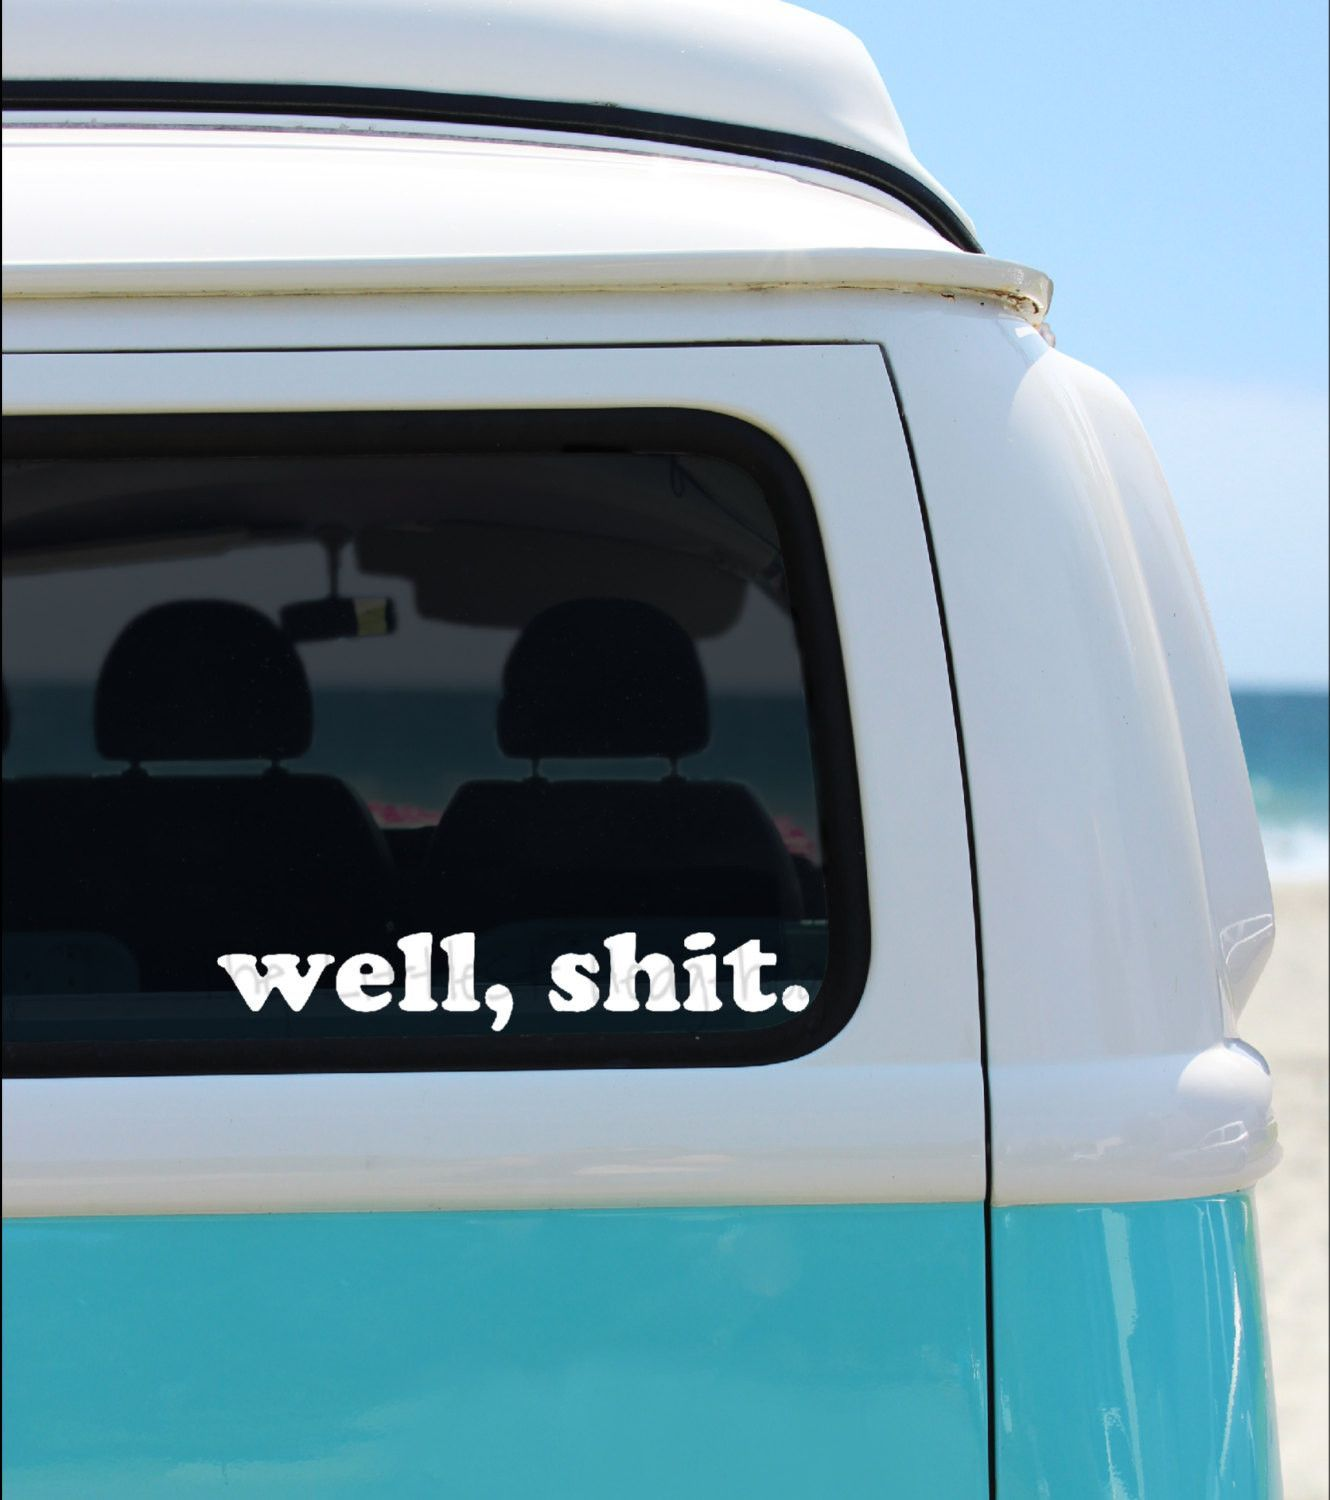 Decal funny car decal humor window decal